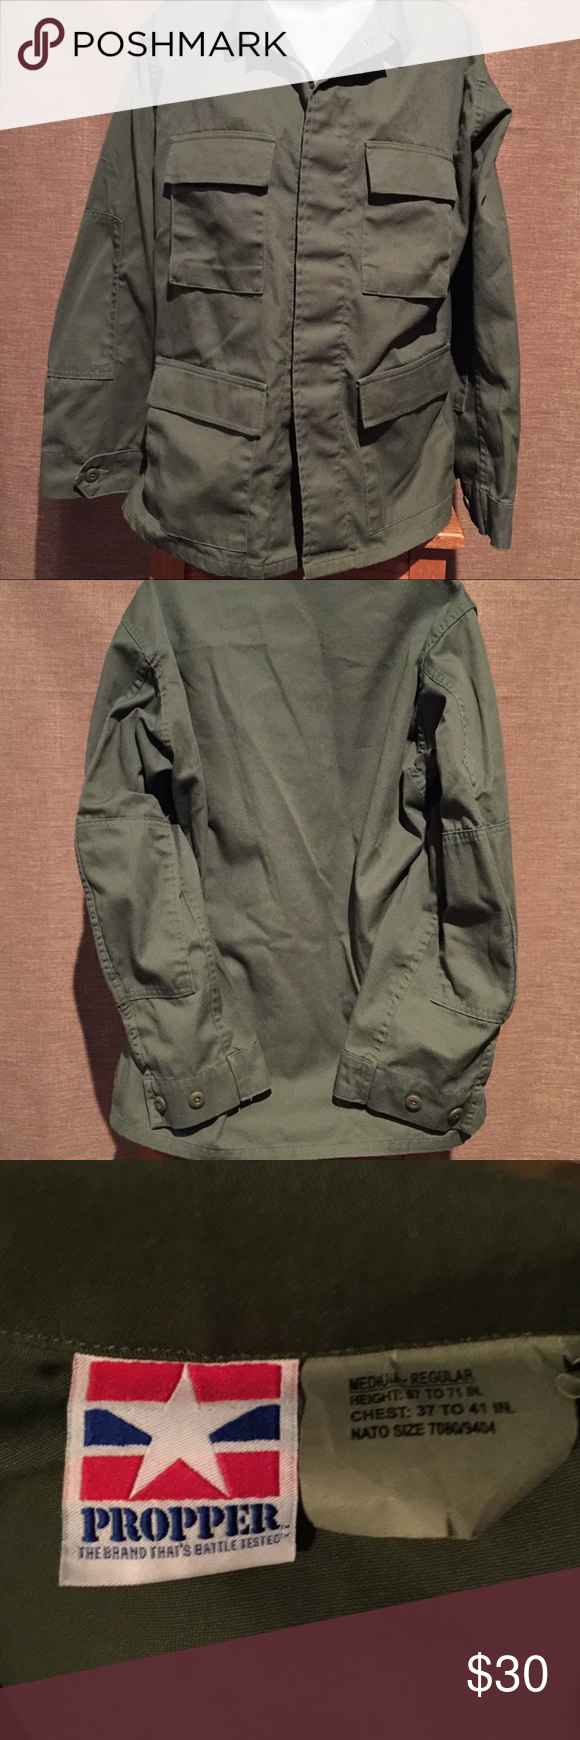 """PROPPER size Medium Combat Military jacket/shirt This is a Size Medium Propper Combat Military Shirt Jacket Olive Green Pll100-98-C-9600.  Inside tag says Medium-Regular.  Height: 67"""" to 71"""".  Chest: 37-41"""".  NATO size -7080/9404.  4 pockets in front. Hidden button pockets.  Button down front with hidden buttons.  Excellent Condition.  PROPER, the brand thats battle tested. PROPPER Jackets & Coats Military & Field"""